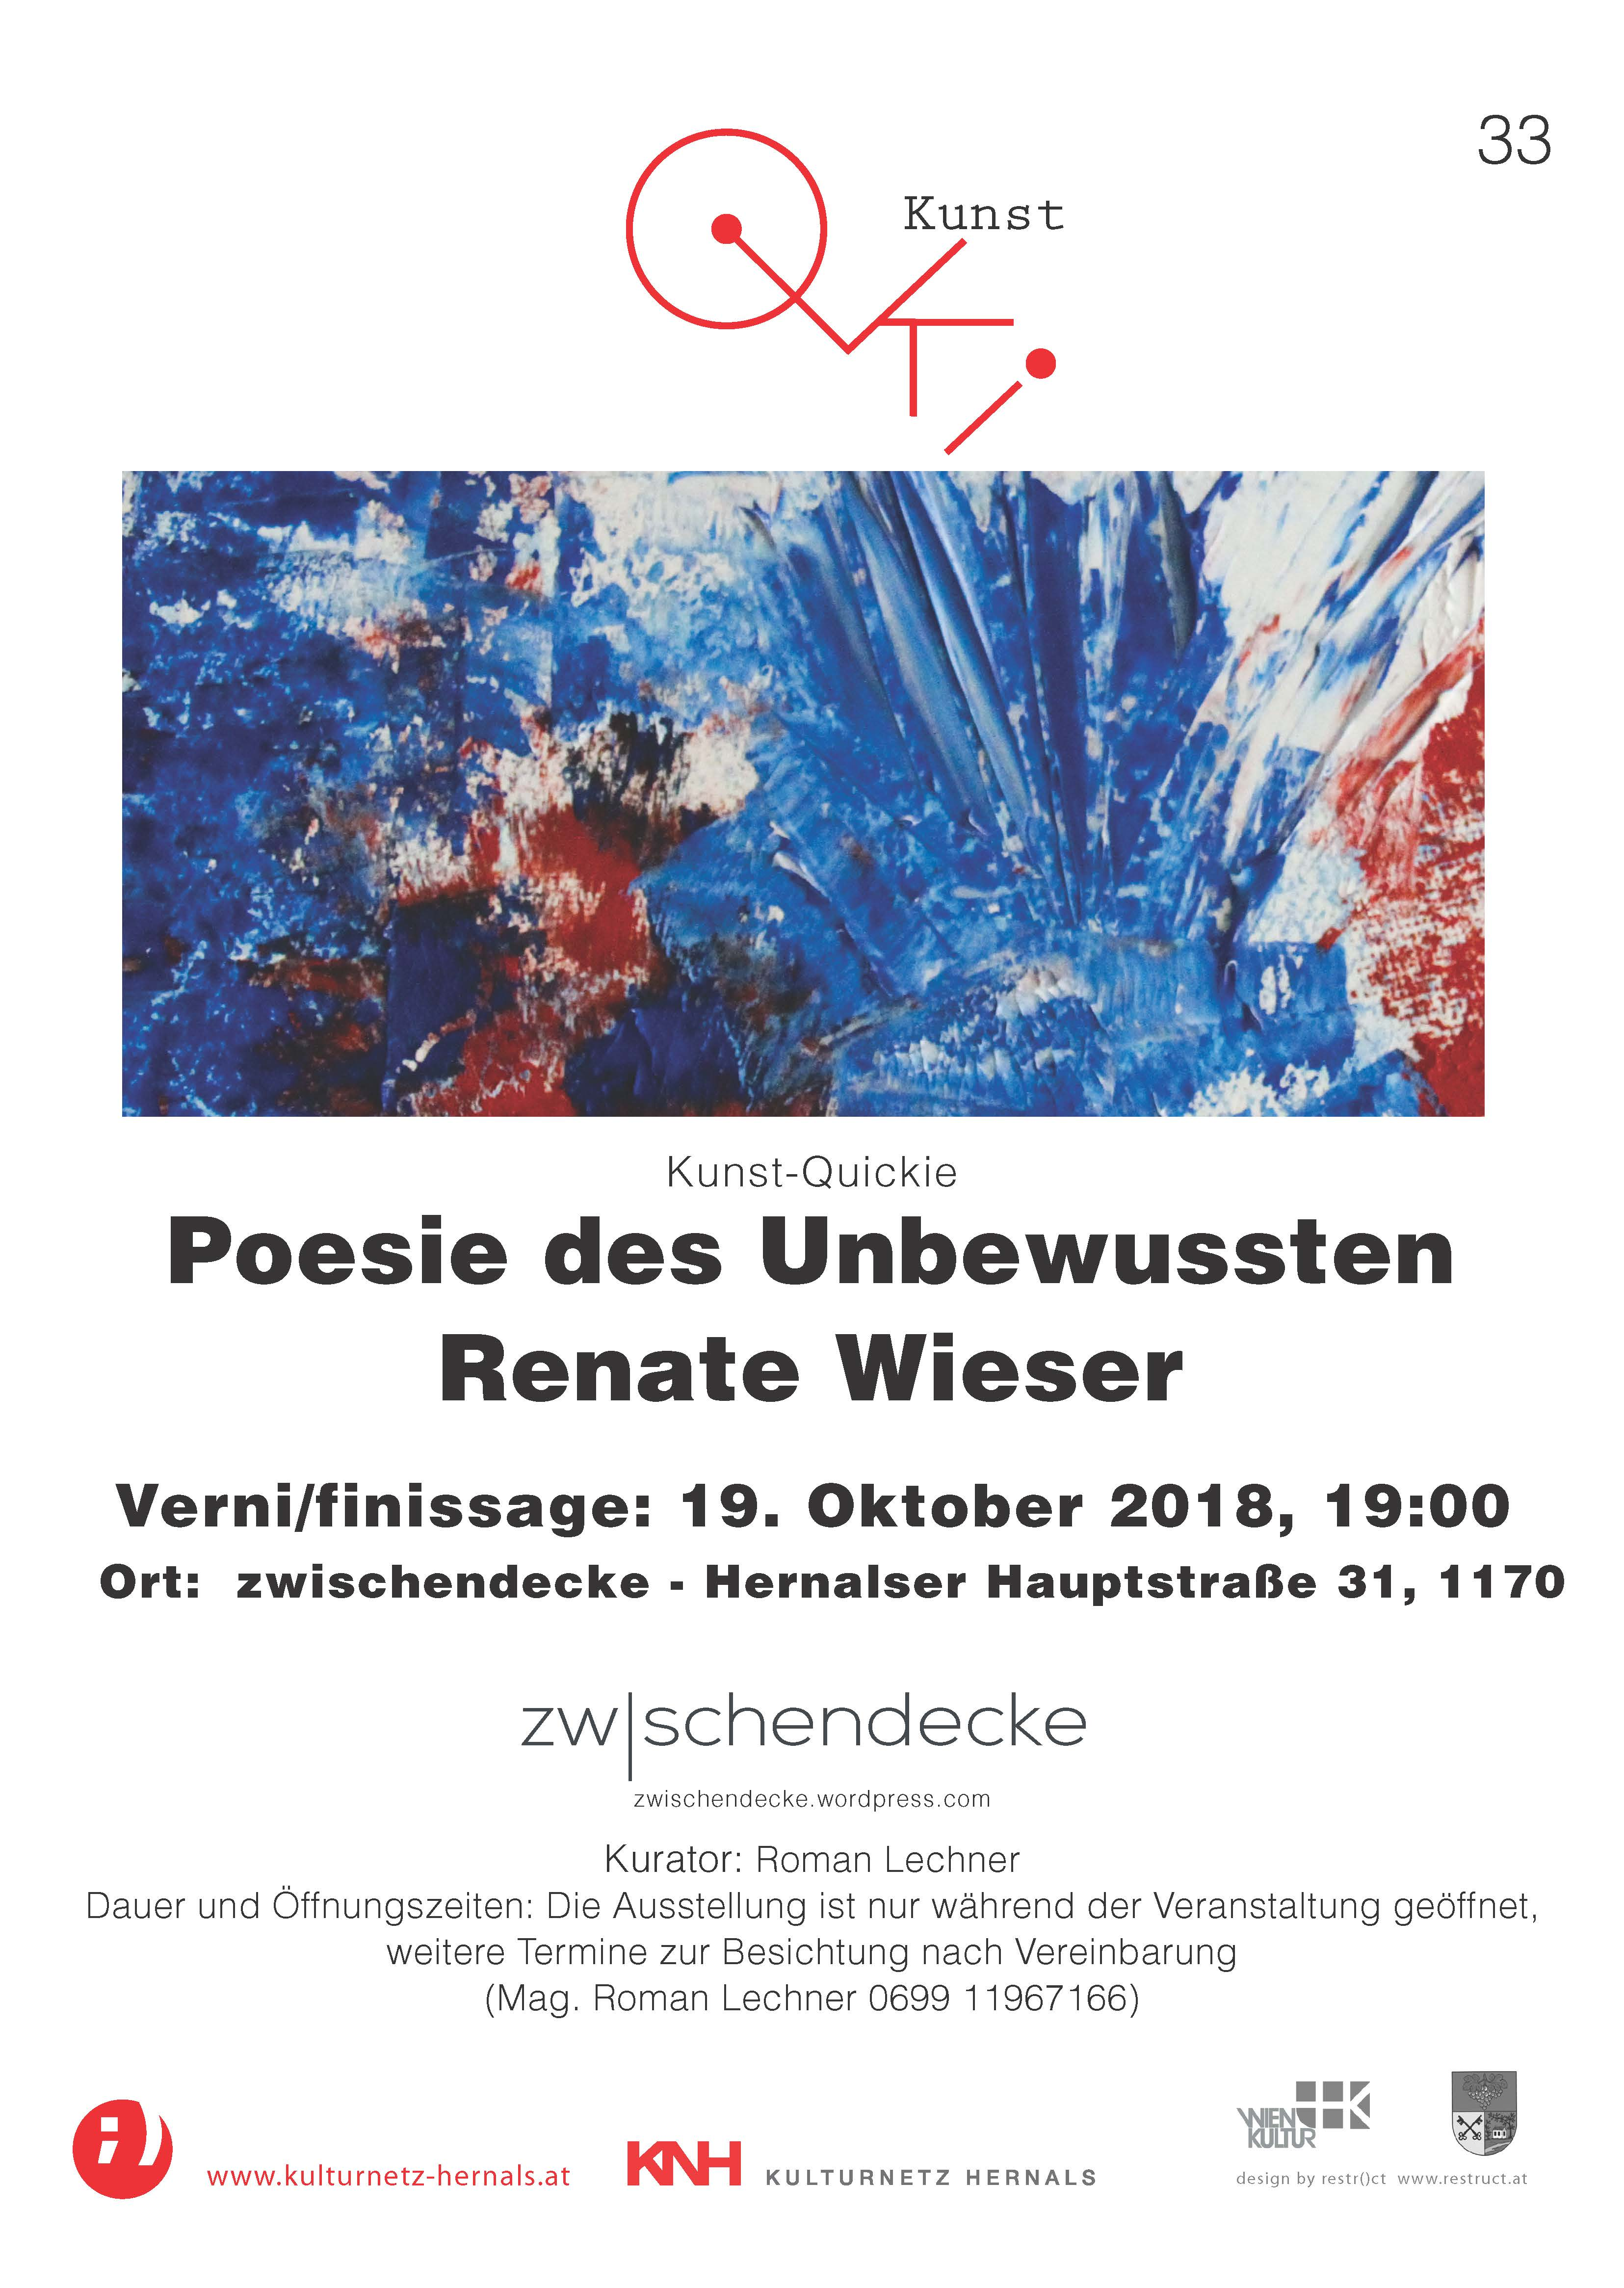 KNH Kunst-Quickie #33 | VERNI / FINISSAGE